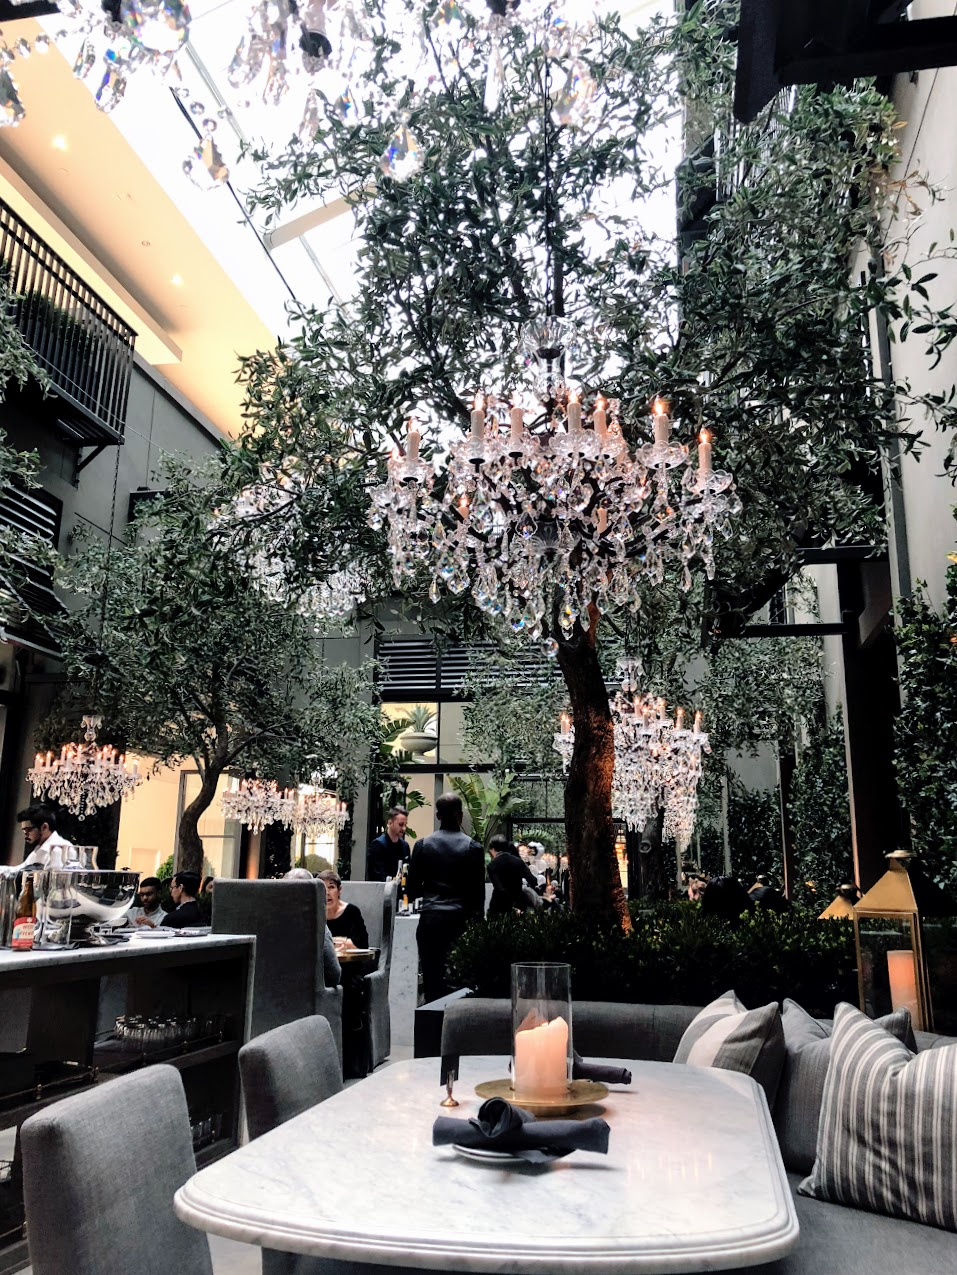 Restoration Hardware Cafe - Restaurant Review